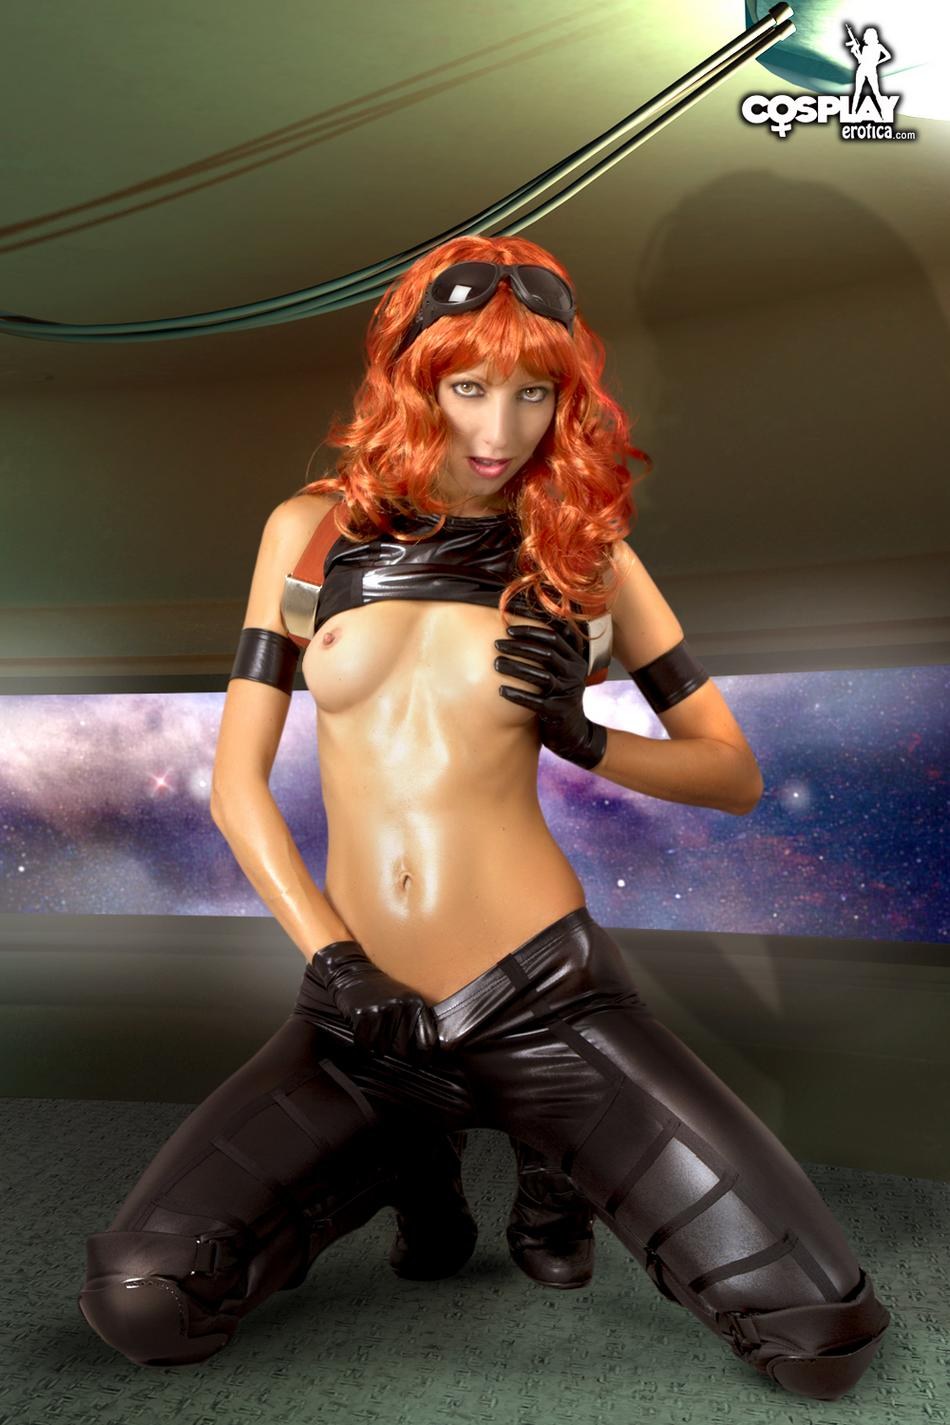 Cosplay naked star wars naked comics